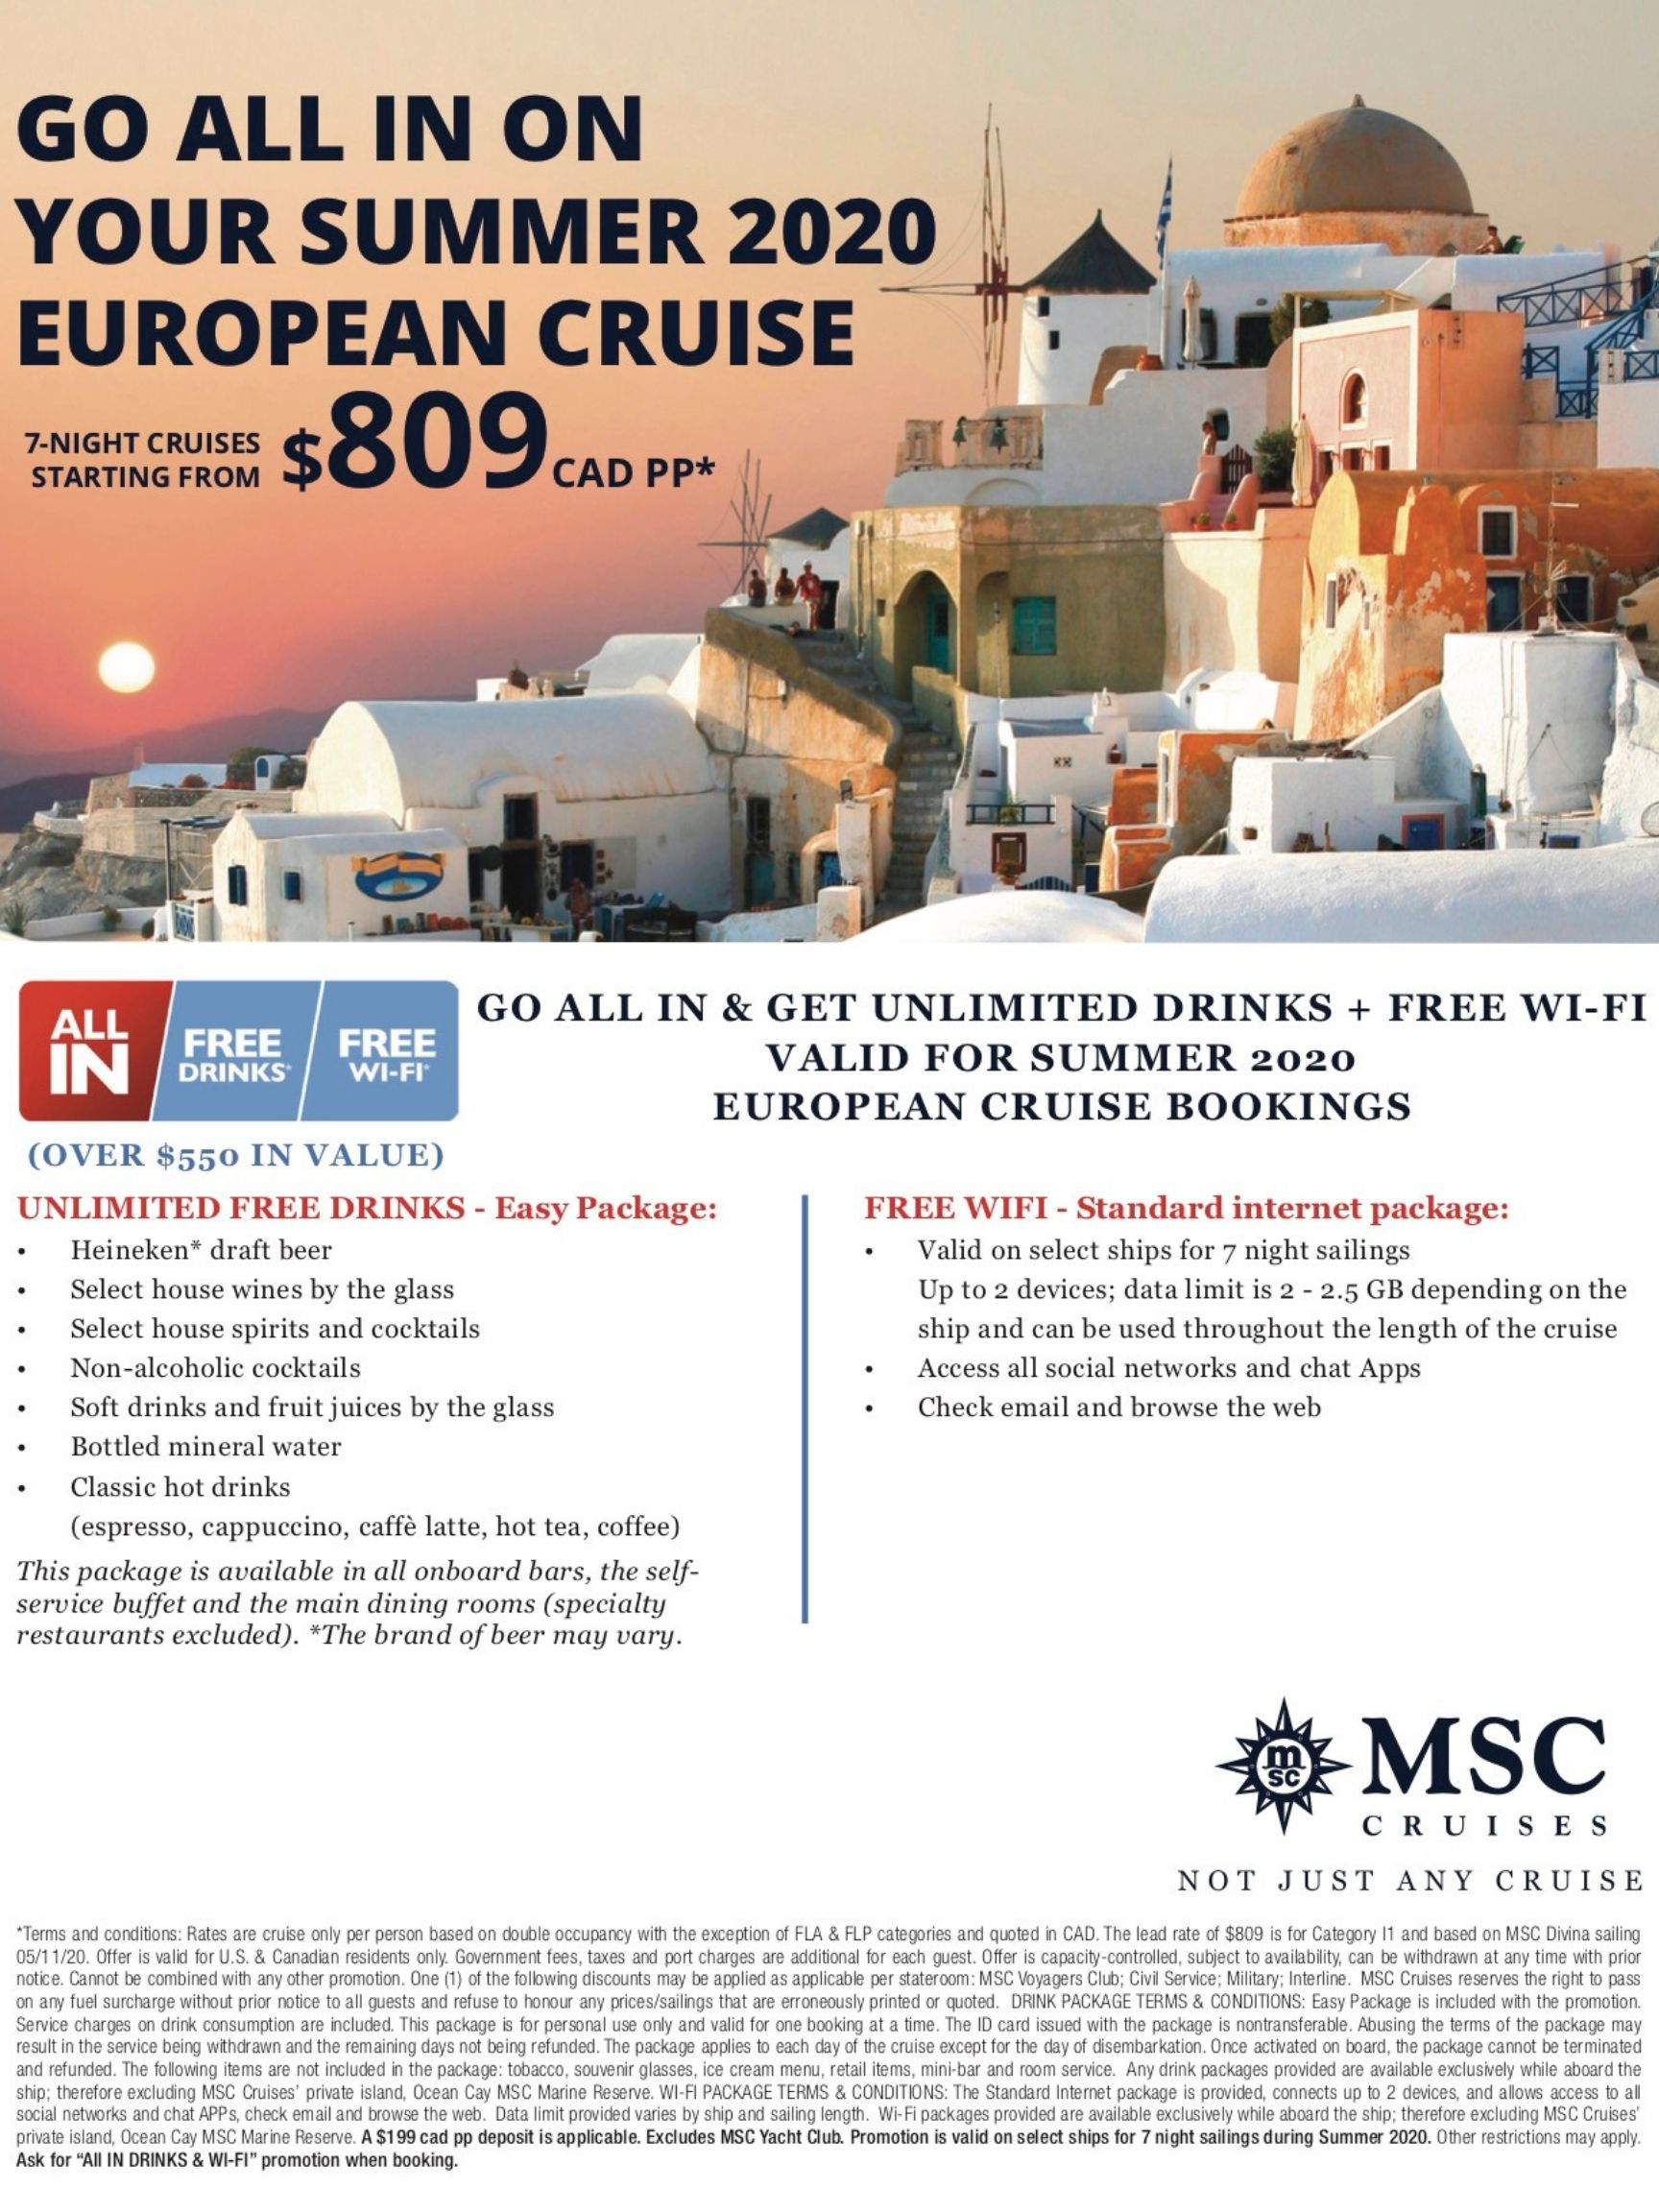 MSC Go All In On Your Summer 2020 European Cruise